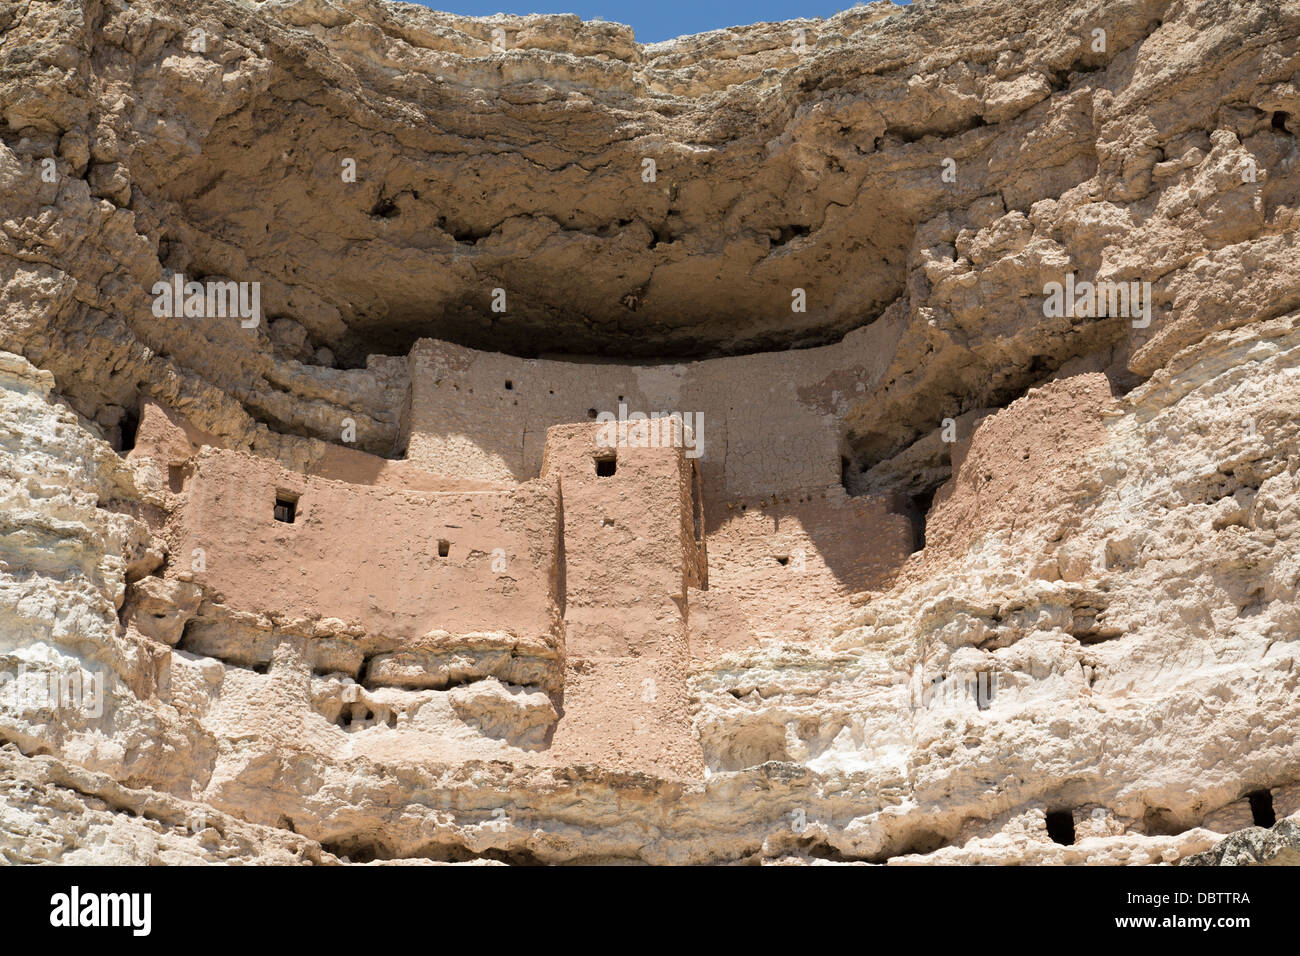 Cliff dwelling of Southern Sinagua farmers, built in the early 1100s CE, Montezuma Castle National Monument, Arizona, Stock Photo